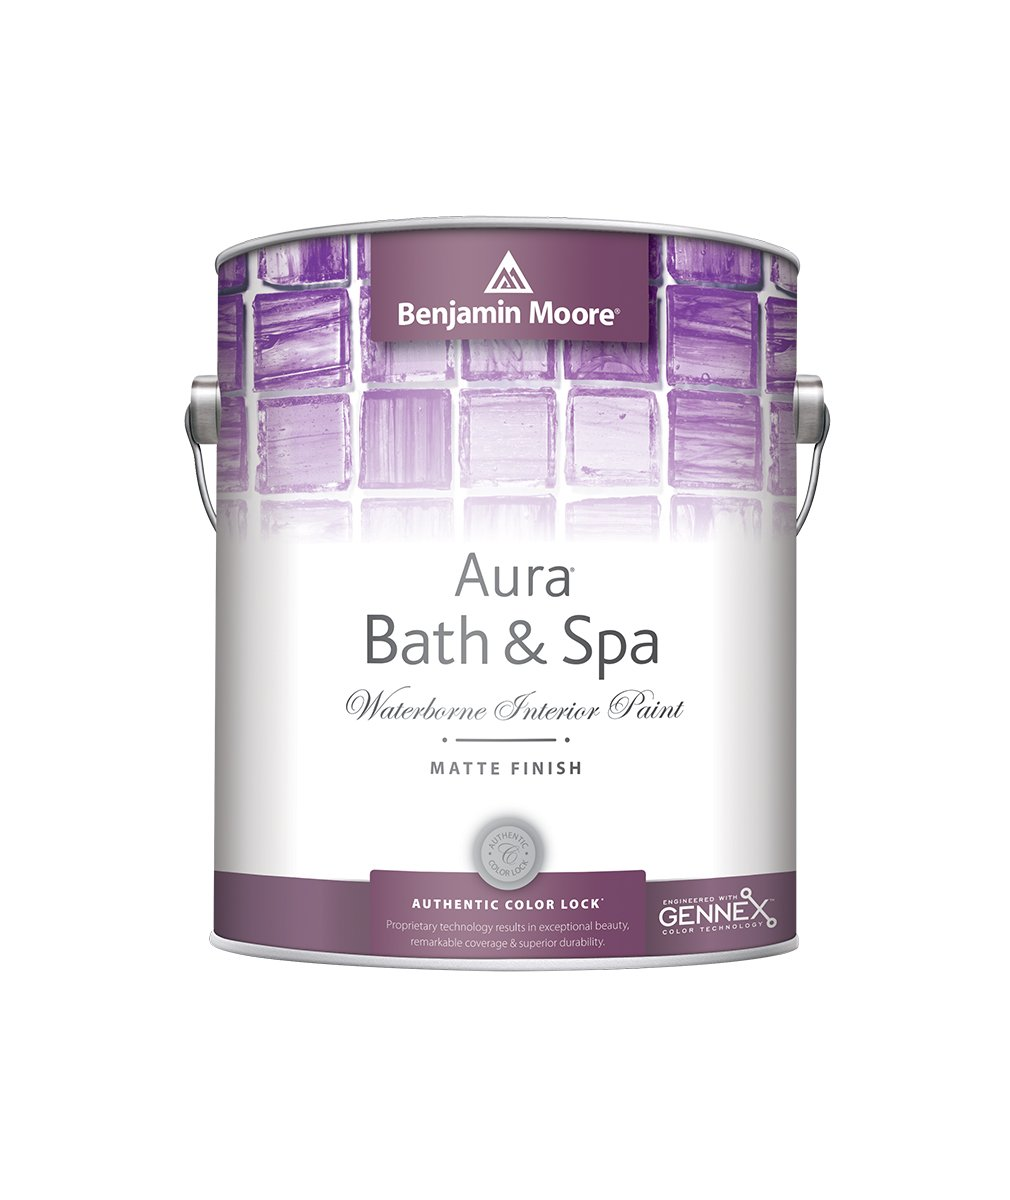 Benjamin Moore Aura Bath and Spa available in Gallons and Quarts online at Clement's Paint.